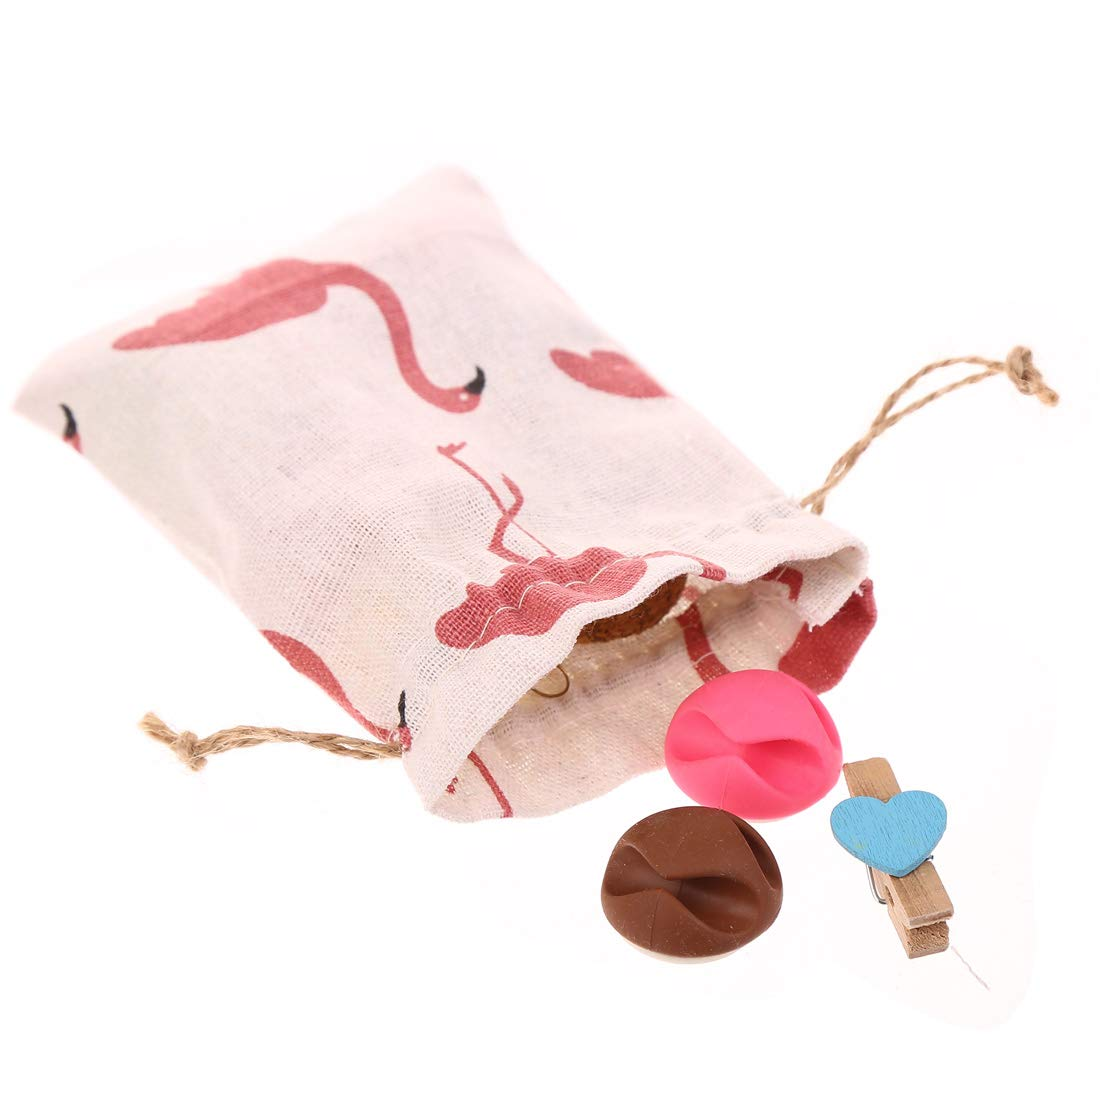 Burlap Bags with Jute Drawstring 50 PCS Jewelry Mini Gifts Flamingo Pouches for Gifts Wedding Favors,Party,DIY Craft and Christmas by CCINEE